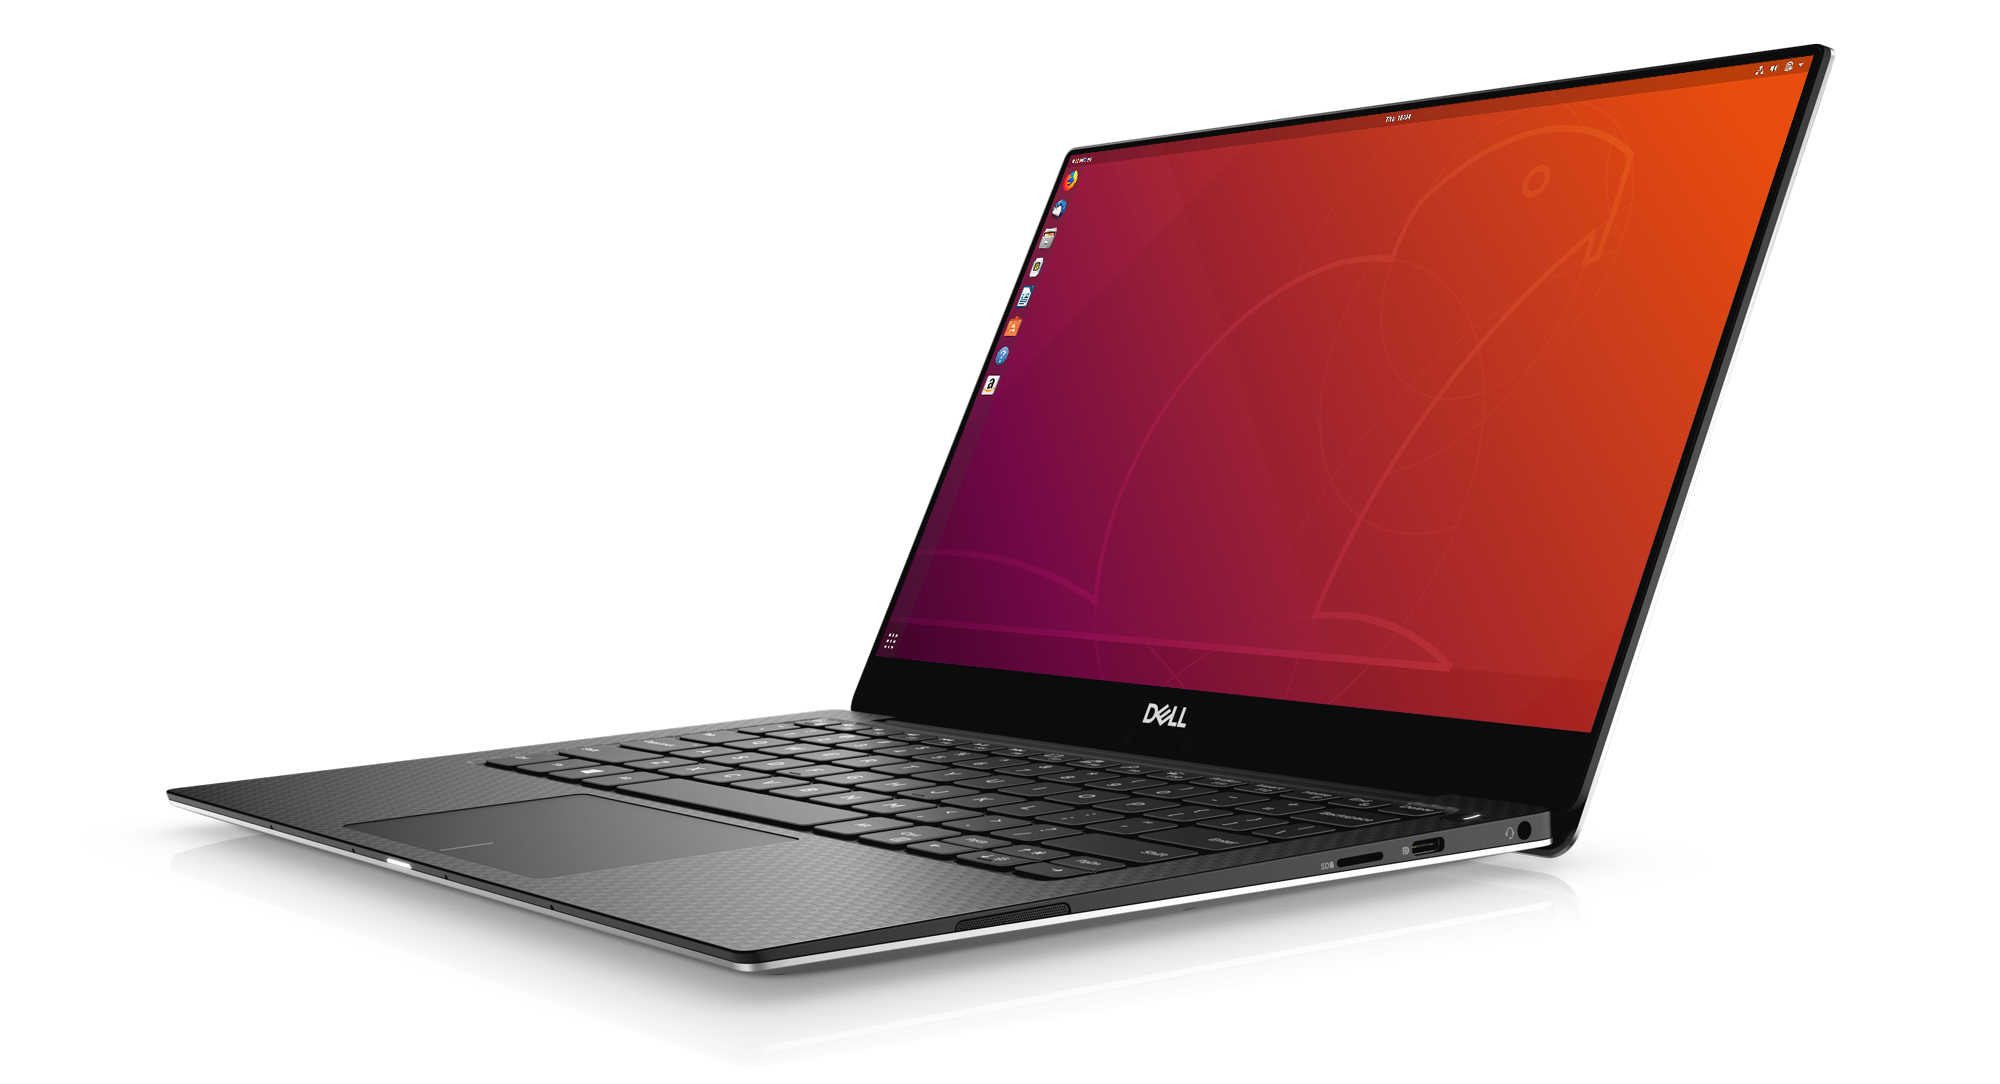 Dell XPS laptop for developers running Ubuntu Desktop by default